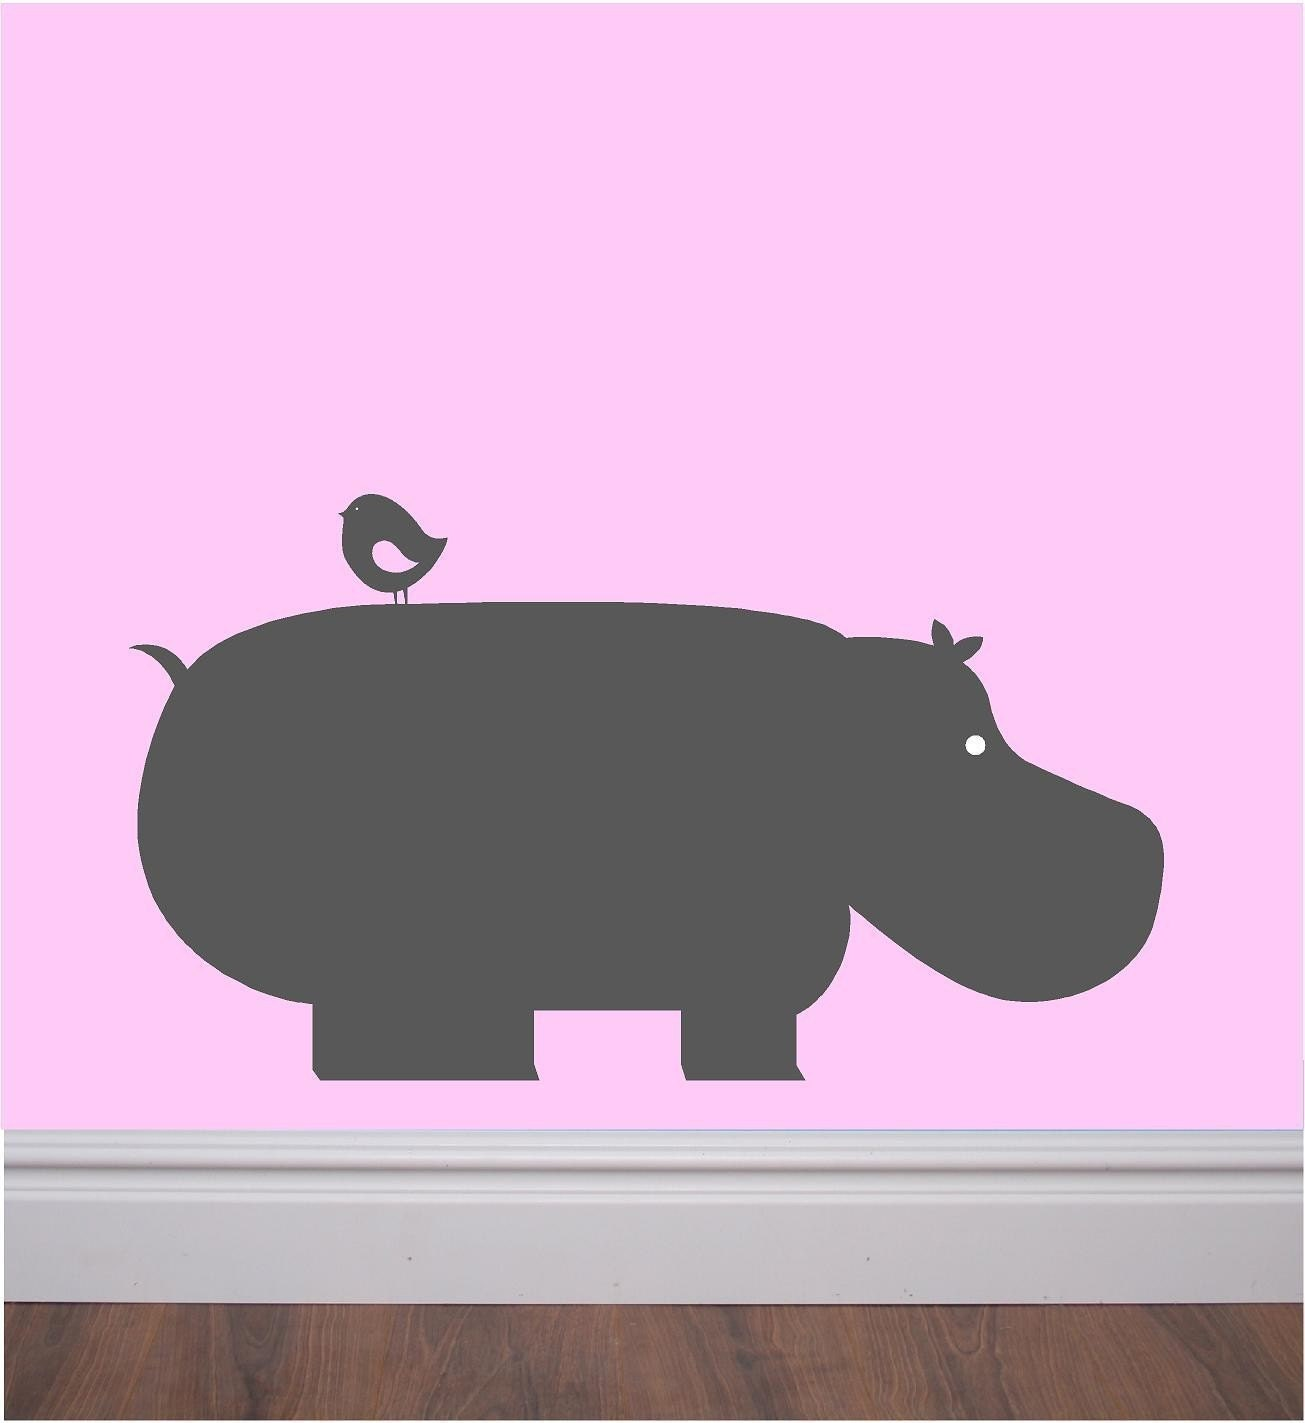 Vinyl wall decal - cute hippo with bird on back - great for nursery, play room